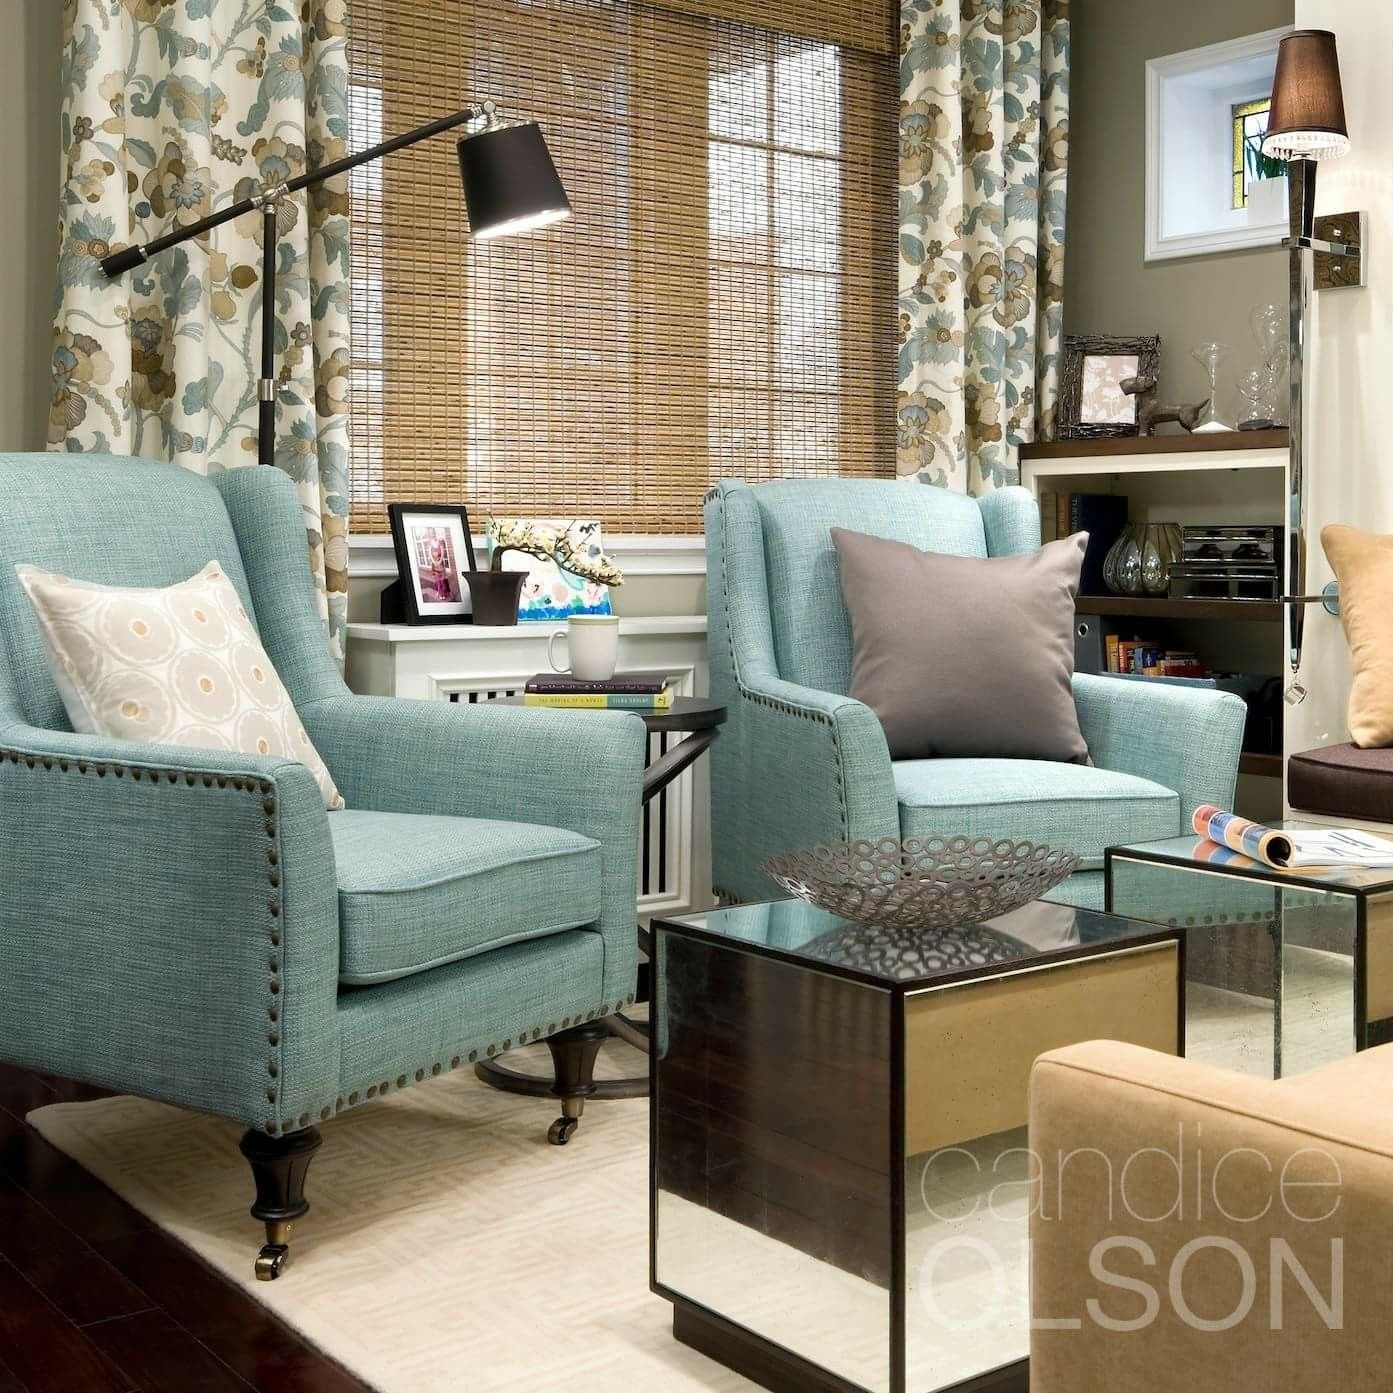 Candice Olson Living Room Decorating Ideas: Disenos De Unas, Decoración